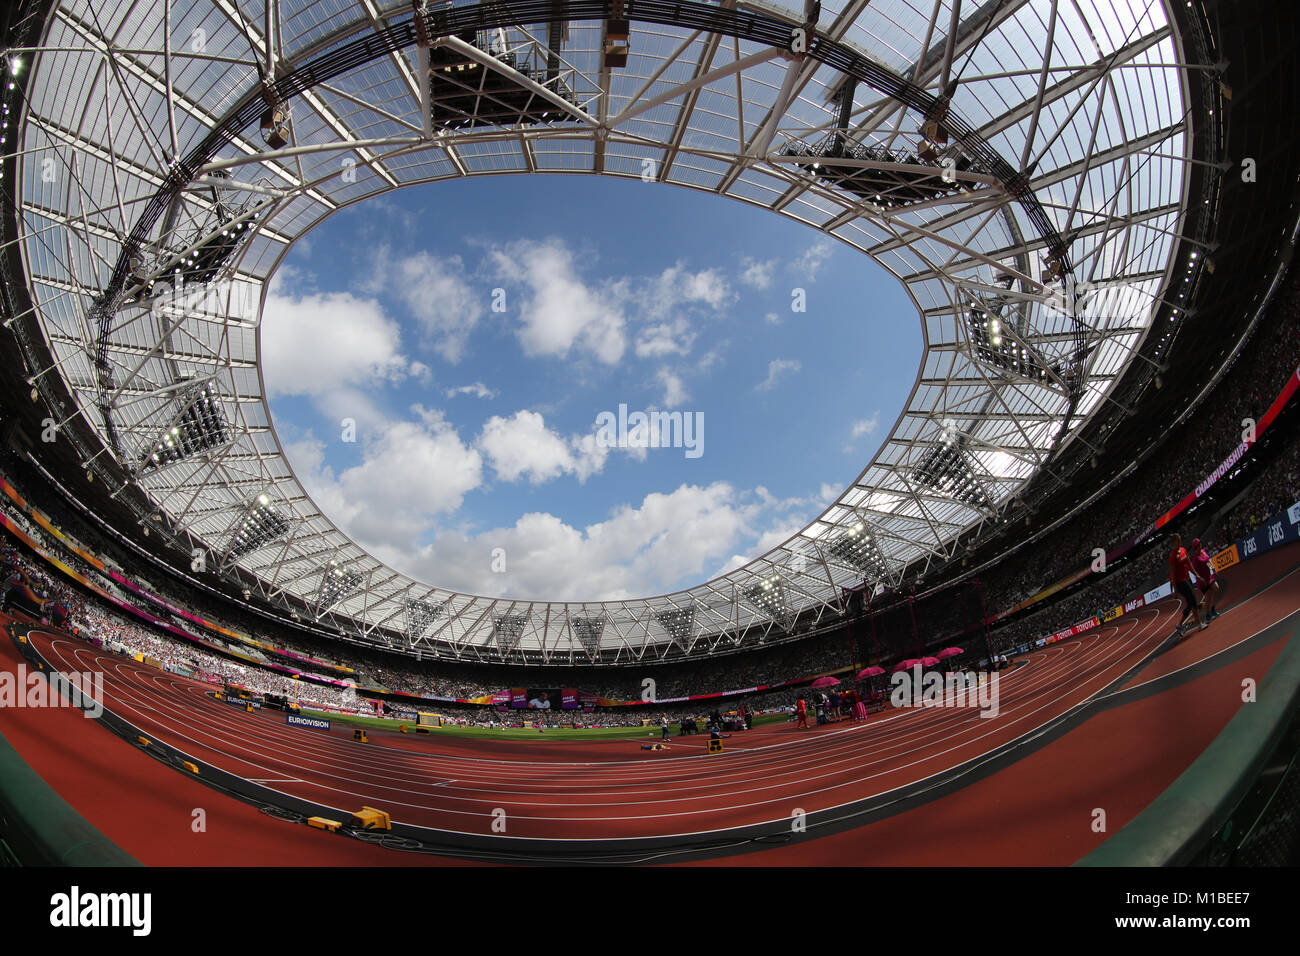 A fish eye view of The London Stadium during the 2017 IAAF World Athletics Championships in London, England - Stock Image